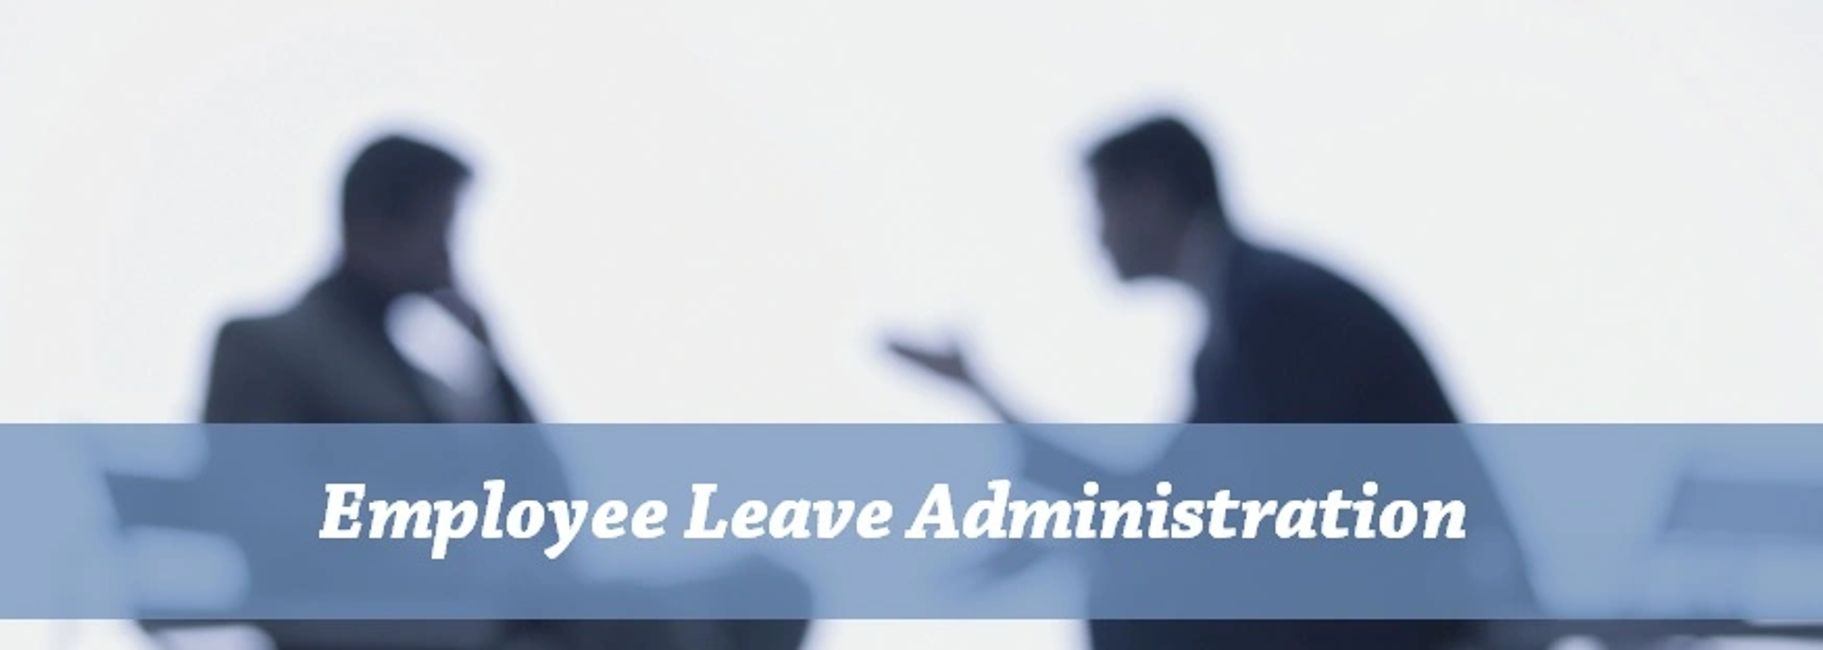 Employee Leave Administration, HR firms Tampa, FL, HR Tampa, HR Florida, HR Consulting Firms Tampa.